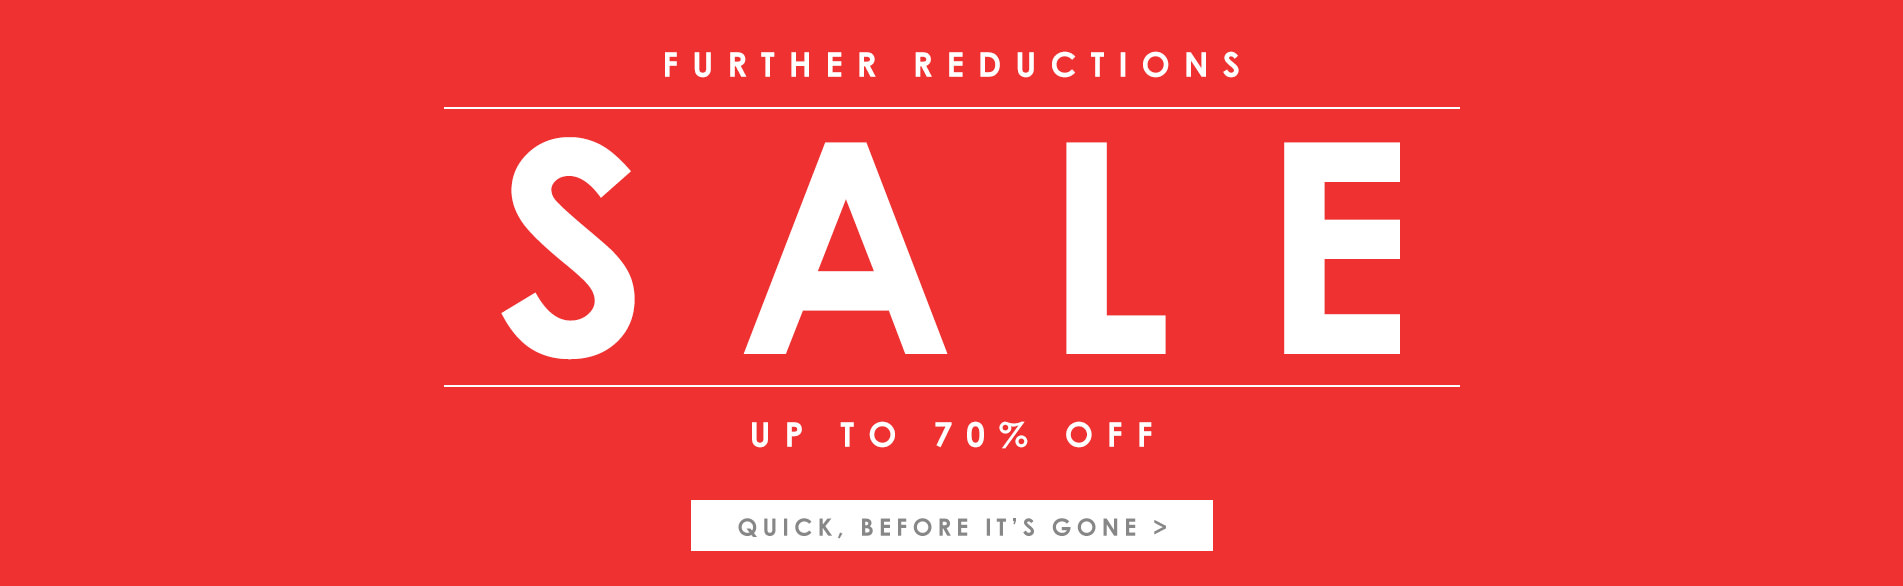 End of season clearance - up to 70% off >